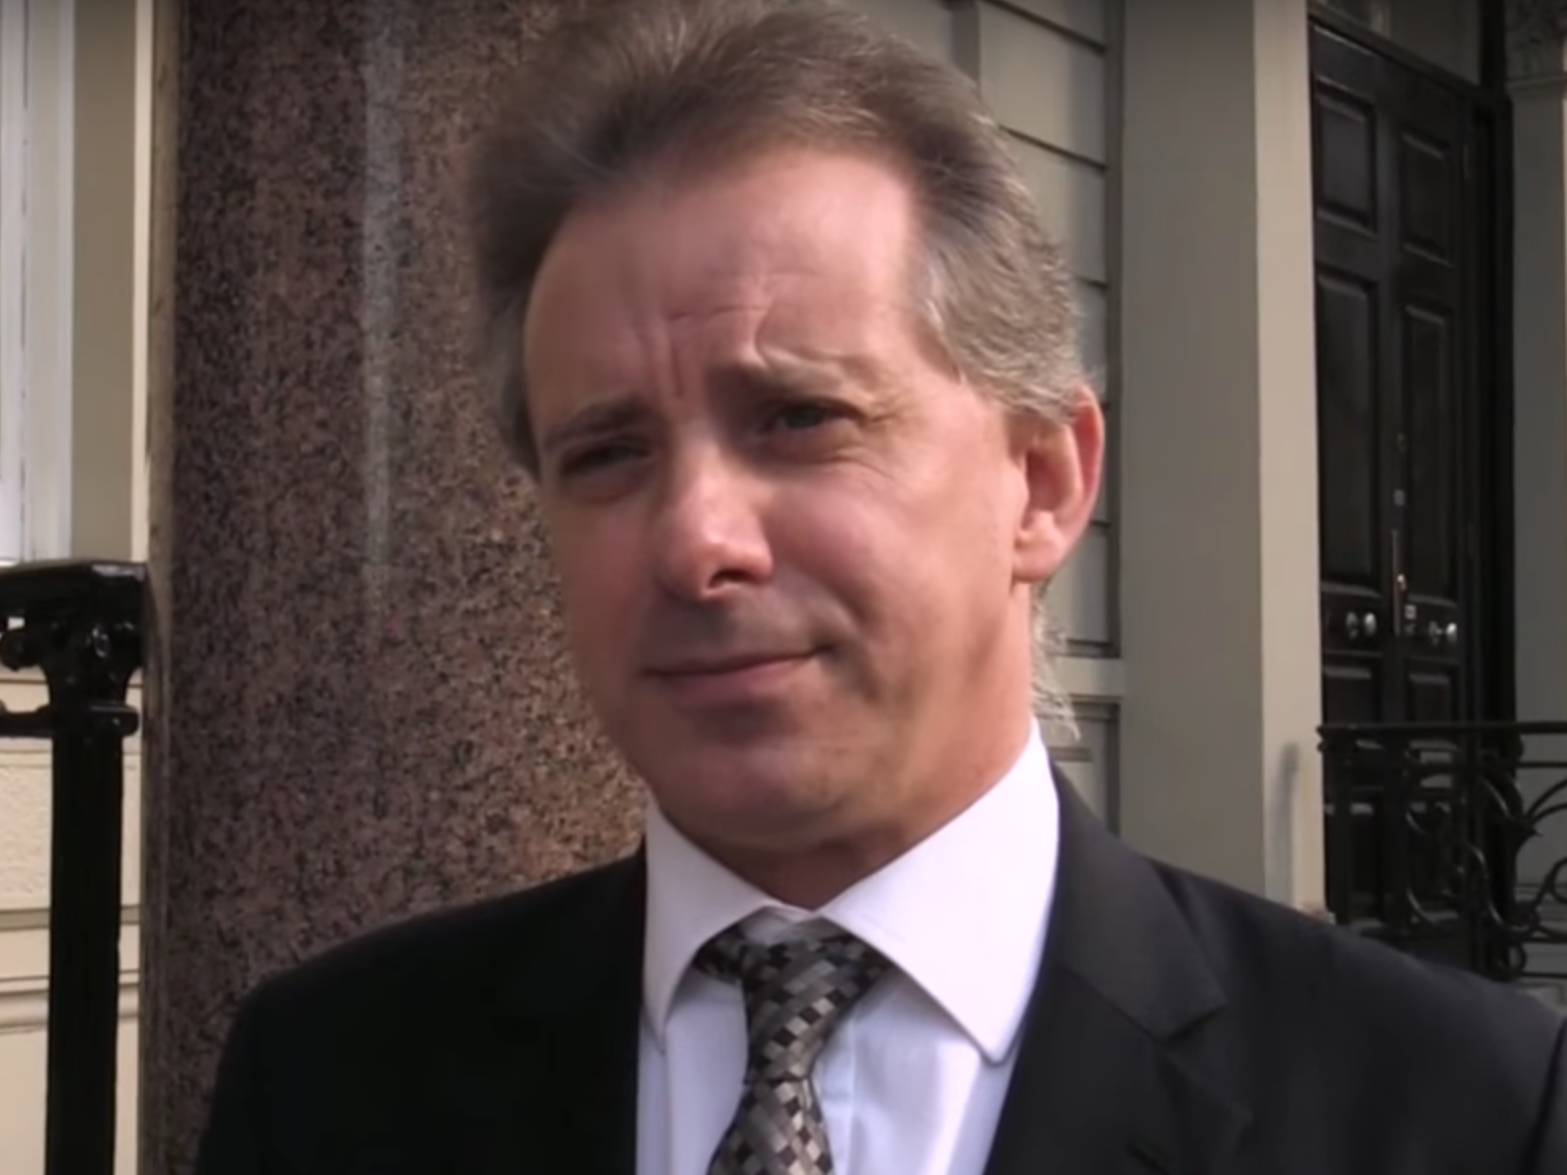 Lawsuit against anti-Trump 'Steele dossier' author dismissed in US court